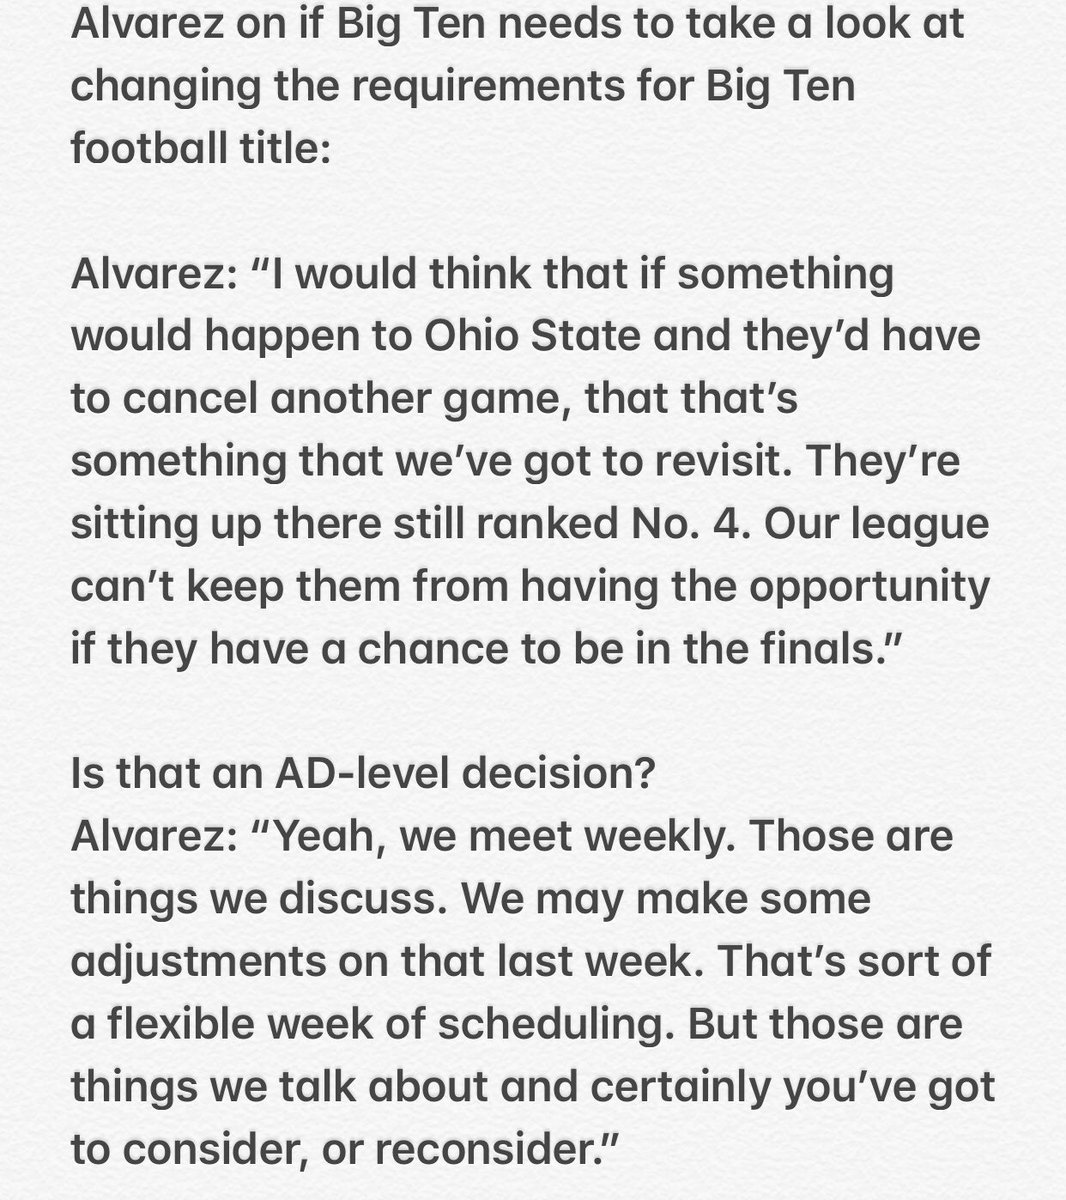 Wisconsin AD Barry Alvarez, who chaired the Big Ten's return-to-play task force, had interesting comments today about Big Ten possibly having to reconsider its requirements for championship (with OSU in mind) From a conversation w The Detroit News today....